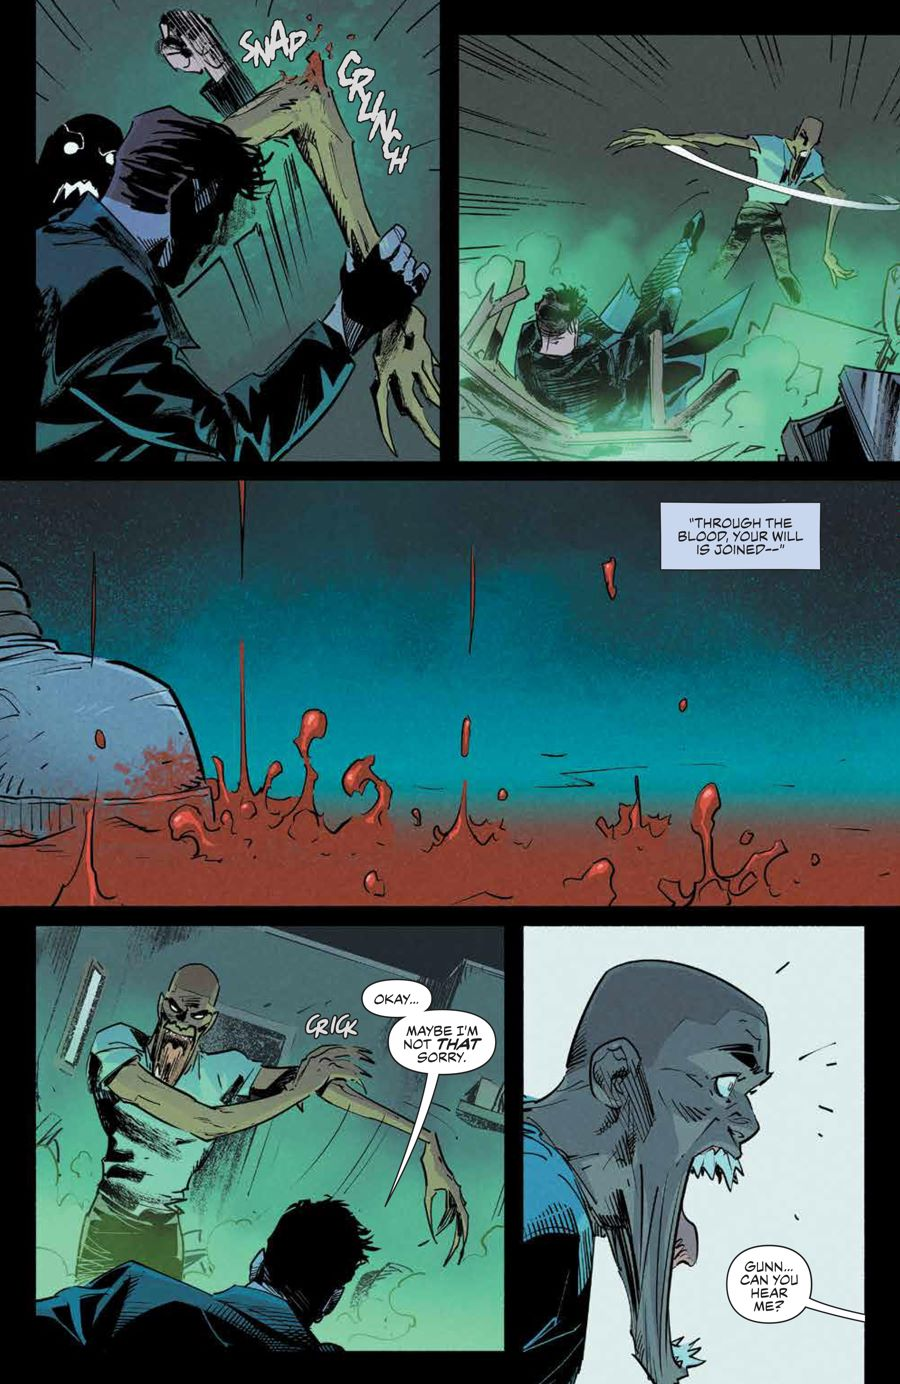 Angel_012_PRESS_8 ComicList Previews: ANGEL AND SPIKE #12